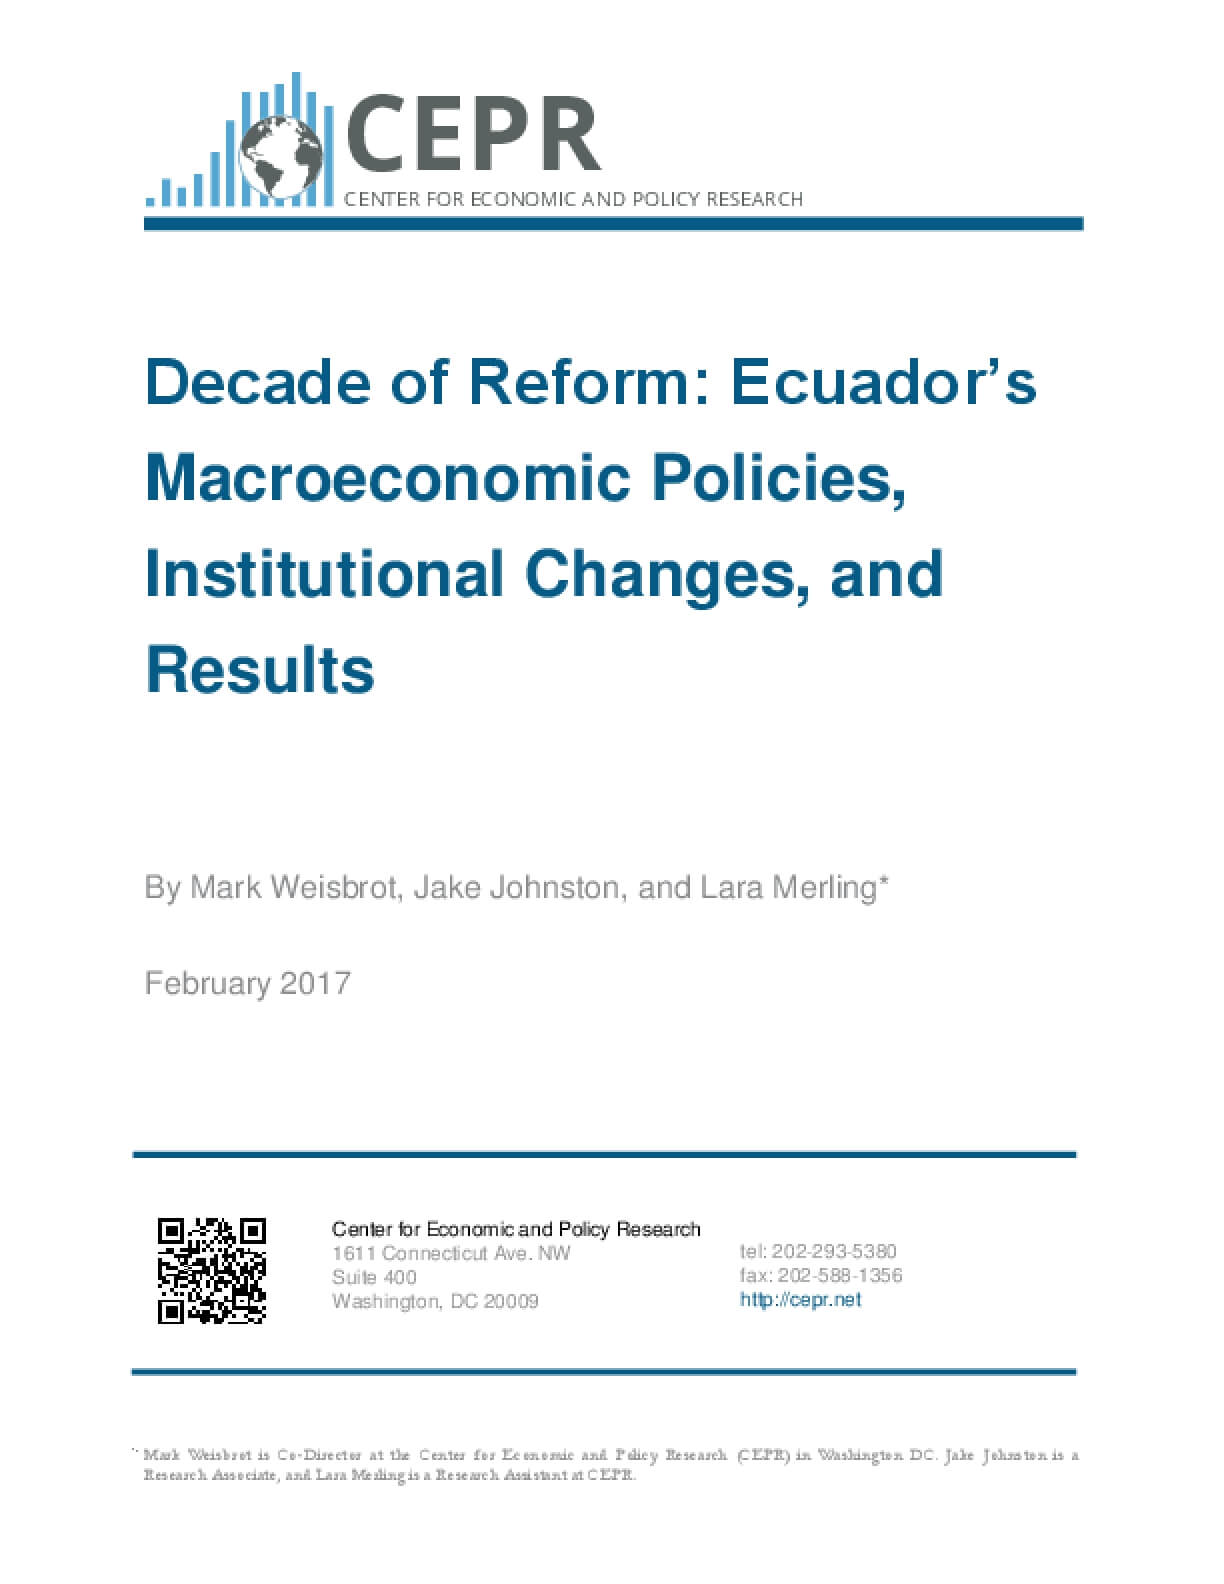 Decade of Reform: Ecuador's Macroeconomic Policies, Institutional Changes, and Results